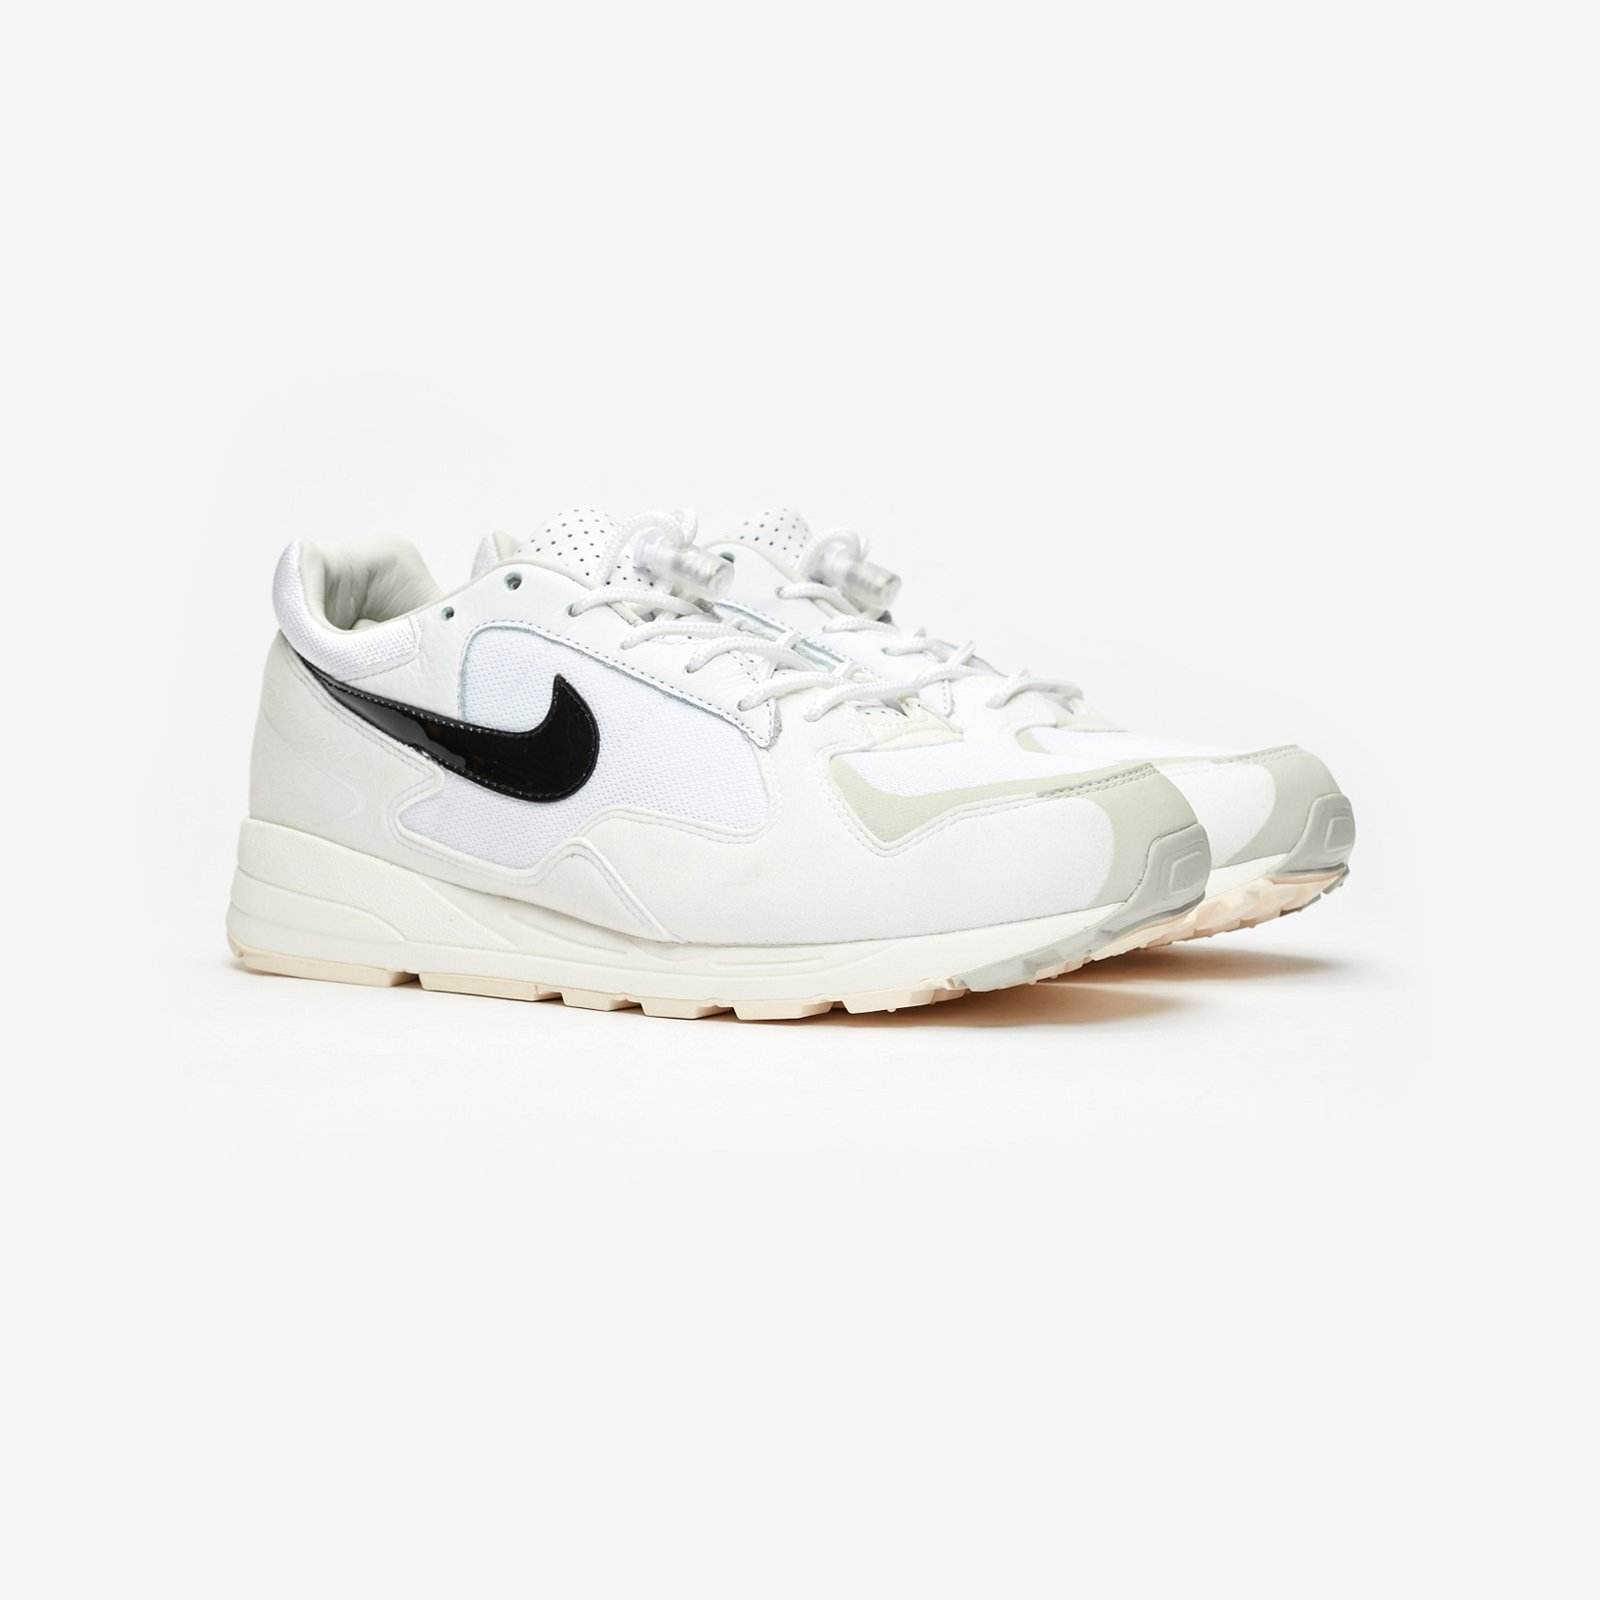 ea9c6d39a1dbb2 Nike Air Skylon II   Fear Of God - Bq2752-100 - Sneakersnstuff ...